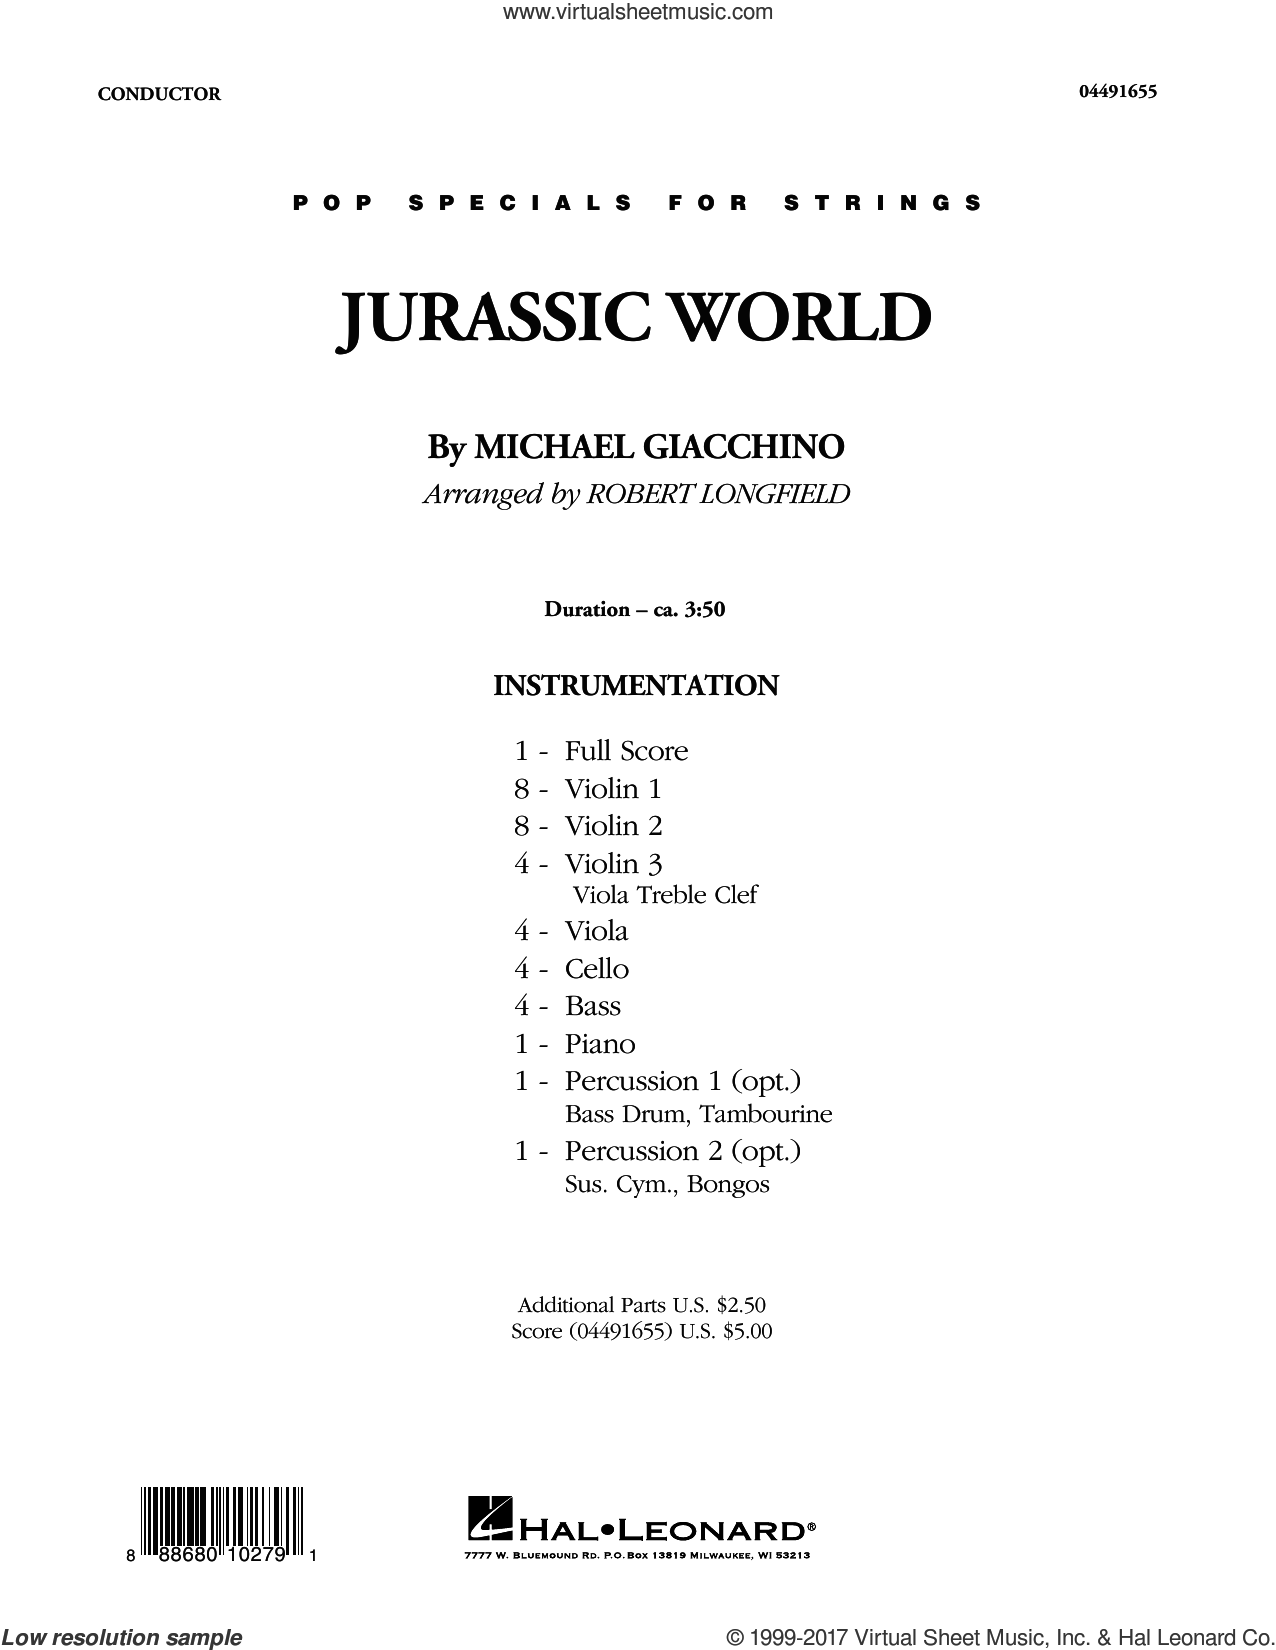 Jurassic World (COMPLETE) sheet music for orchestra by Robert Longfield and Michael Giacchino, intermediate skill level